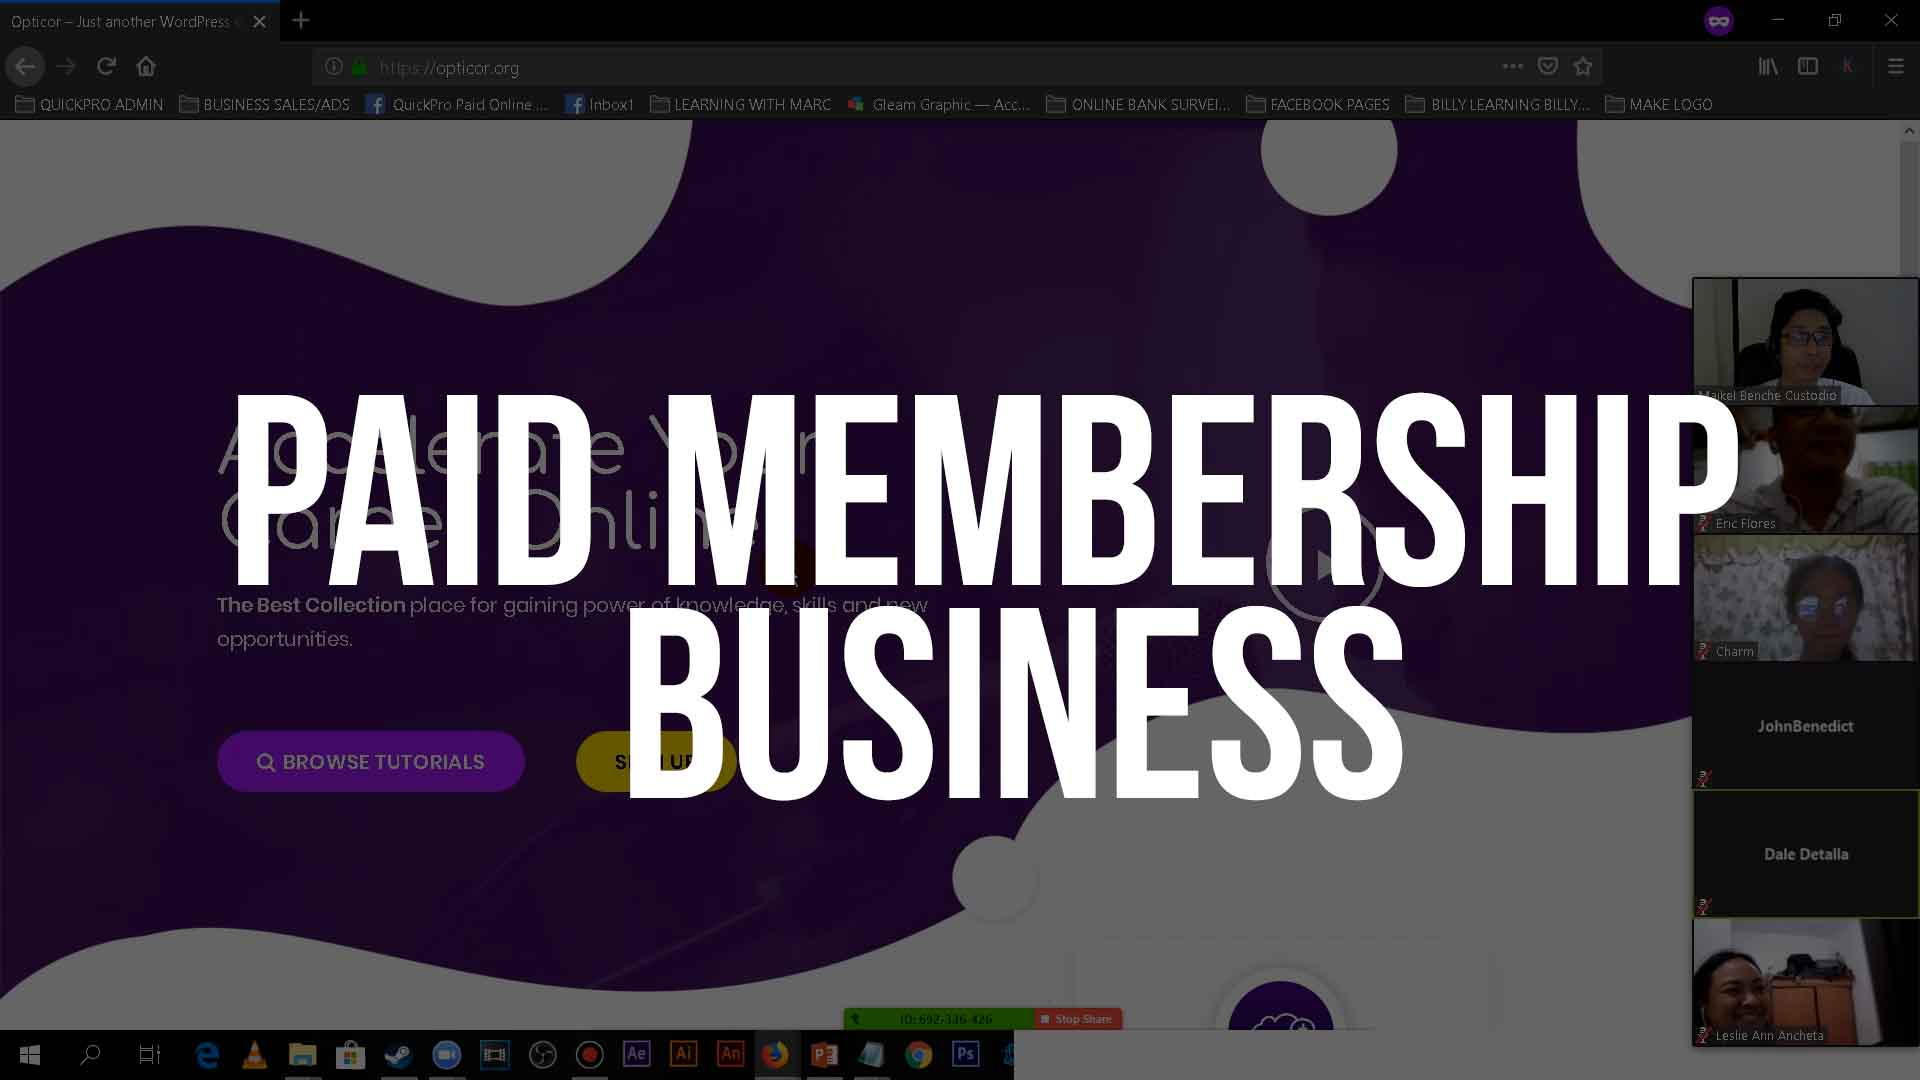 PAID MEMBSERHIP